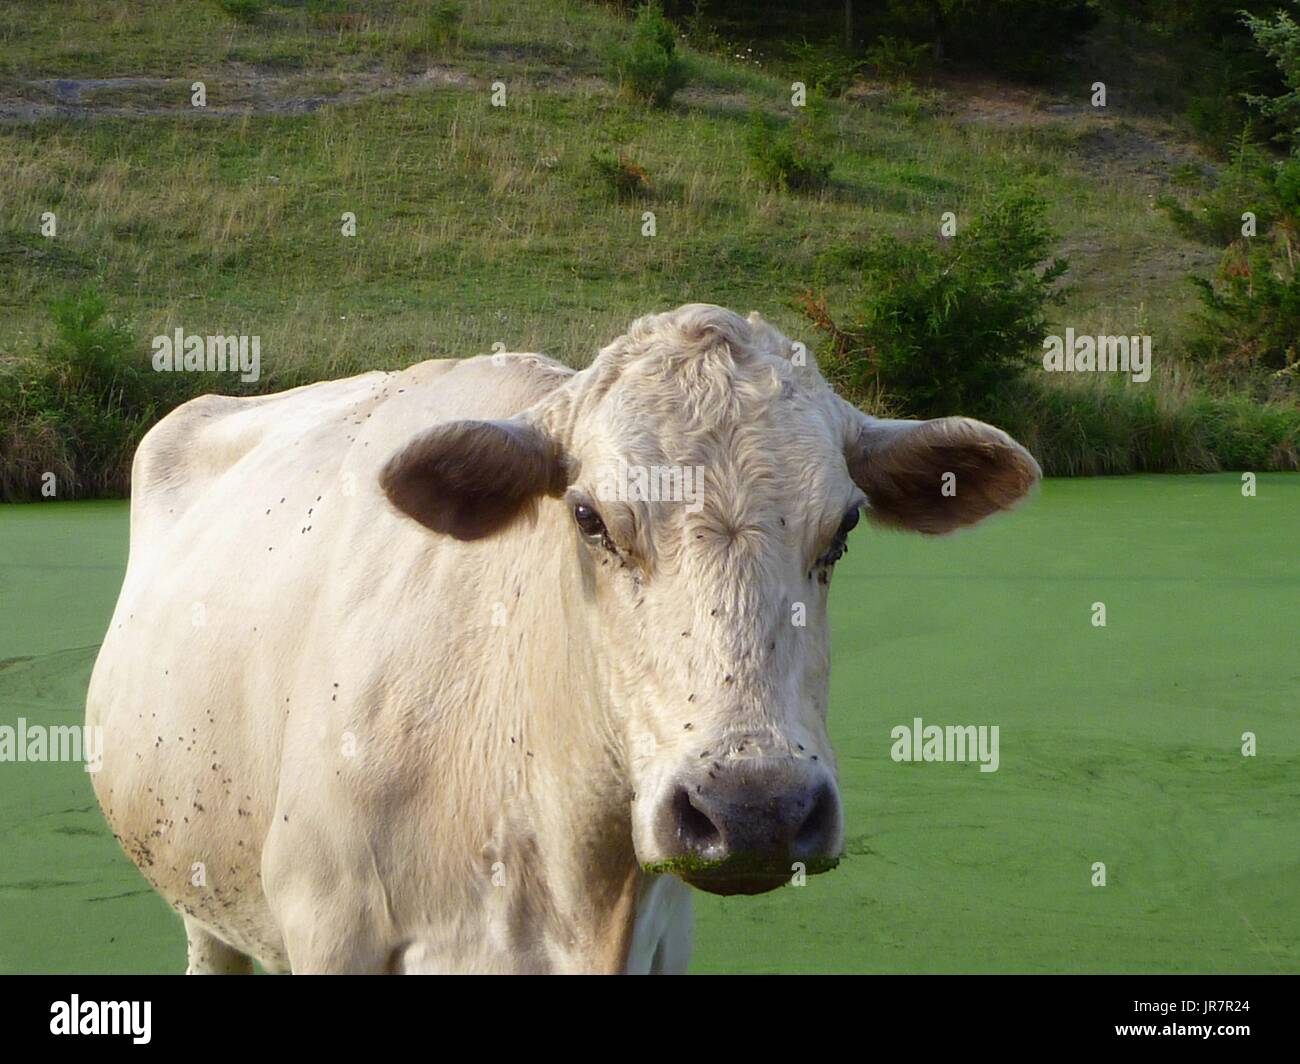 White cow covered with flies standing in algae-filled pond - Stock Image